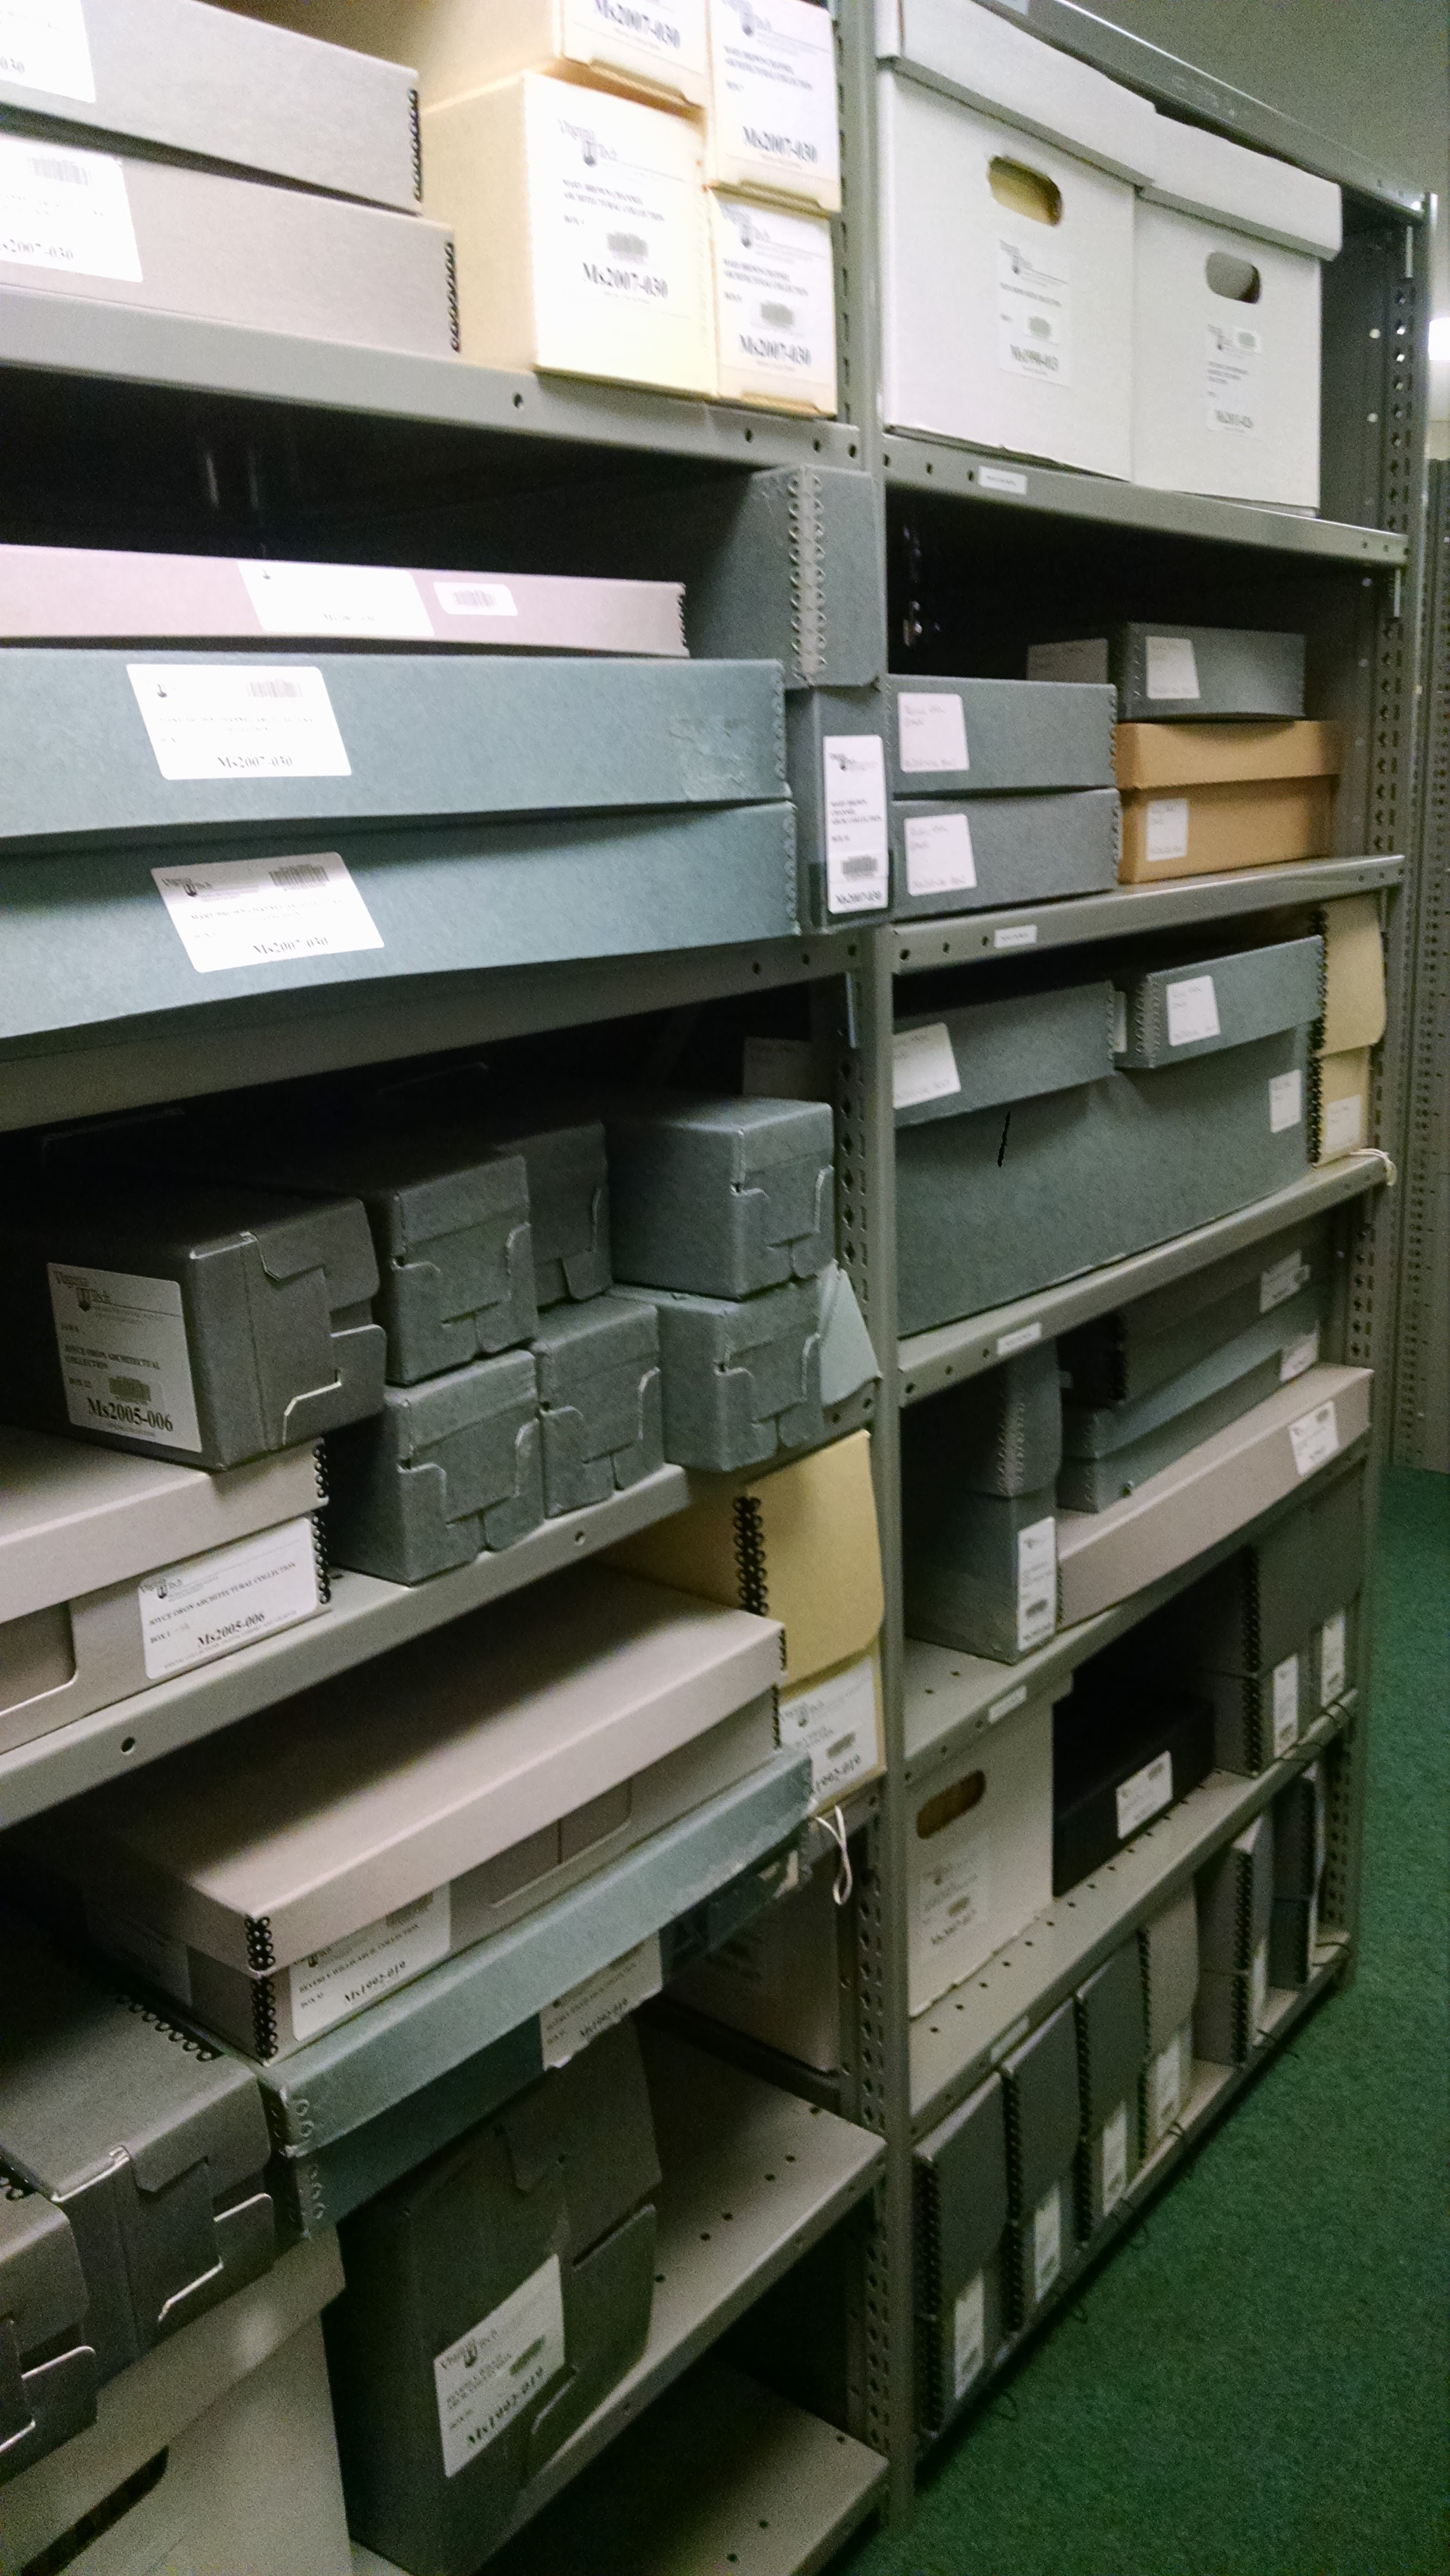 Perspective view of 6 foot archival shelves with many boxes of different colors and sizes.